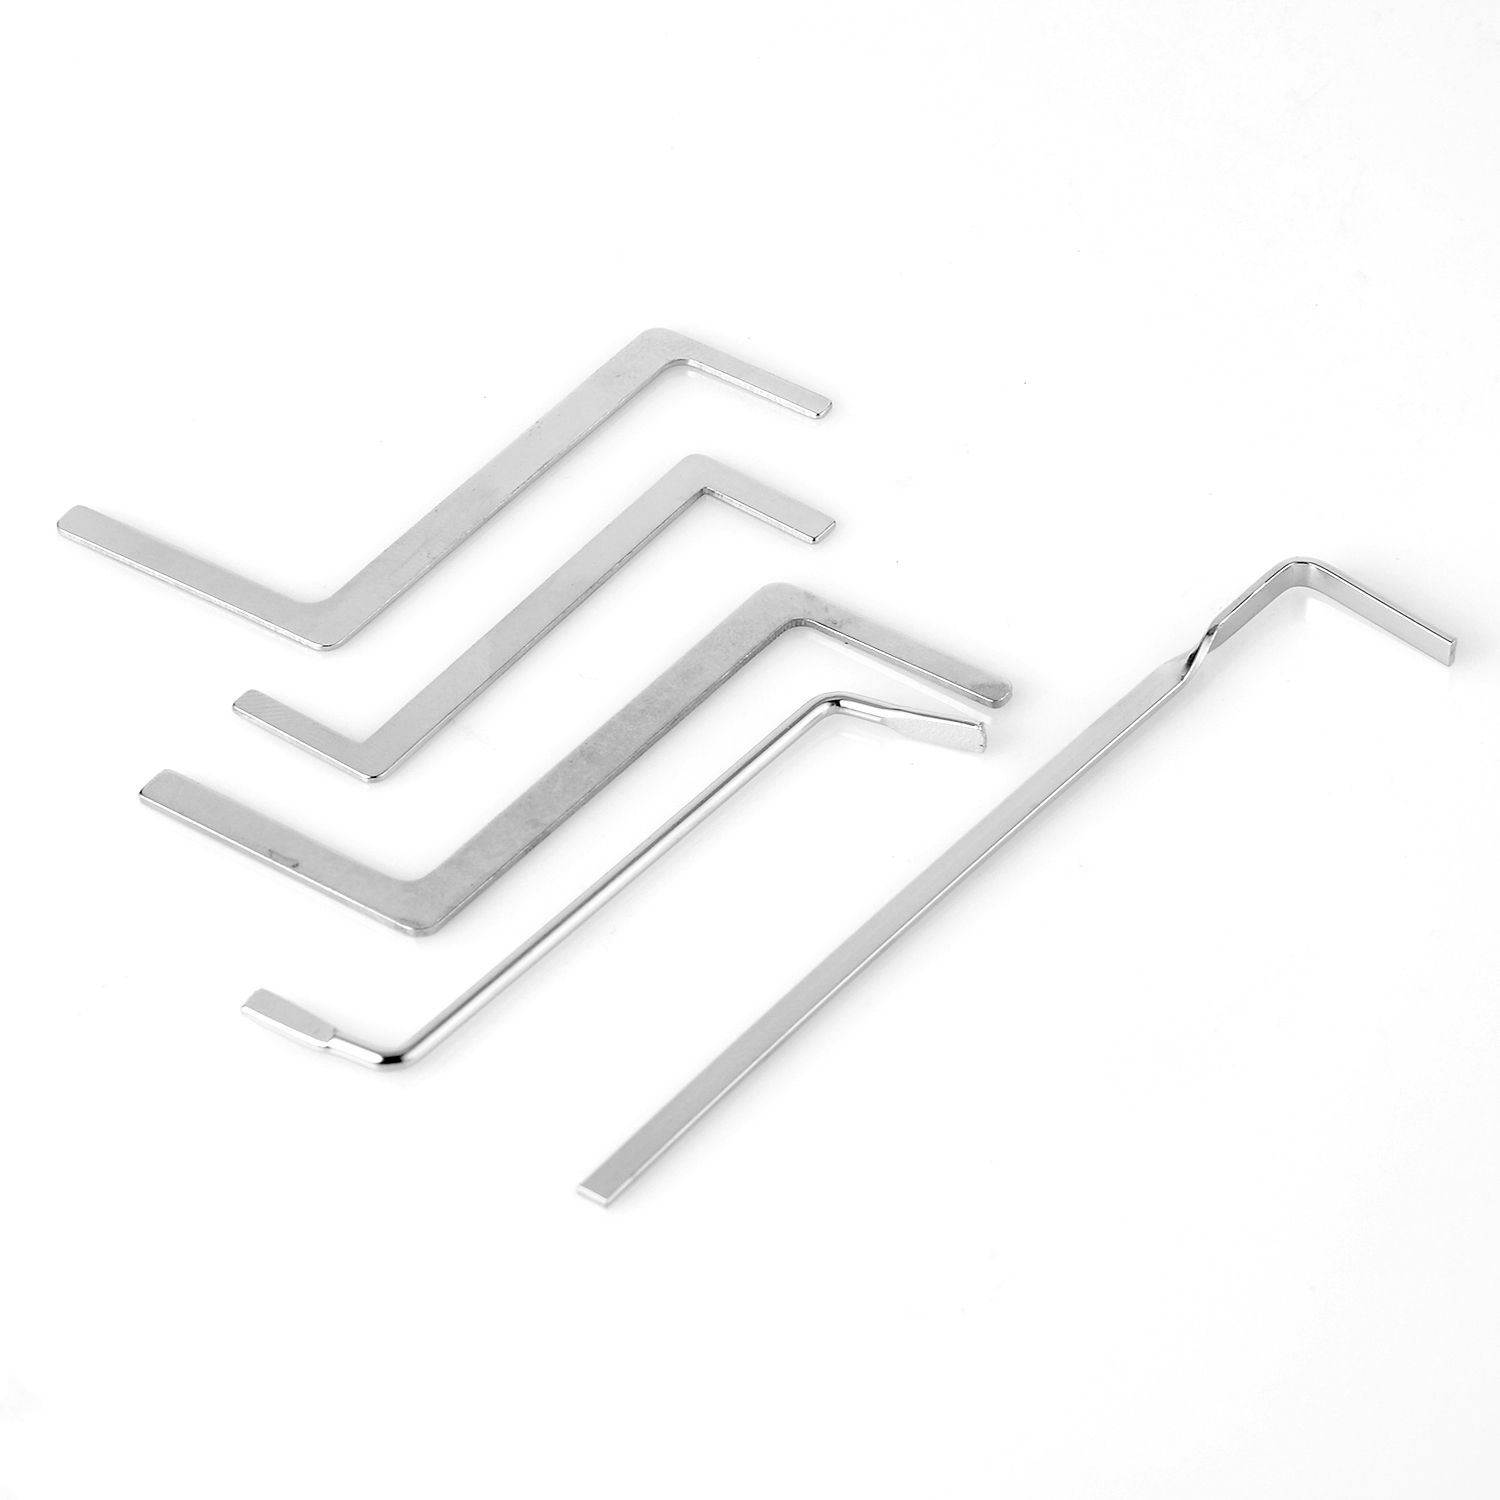 Hot!5 Pcs Locksmith Tools Multifunction Metal Tension Rod/Puch Rod Tubestension Wrench For Locksmith Supply ...